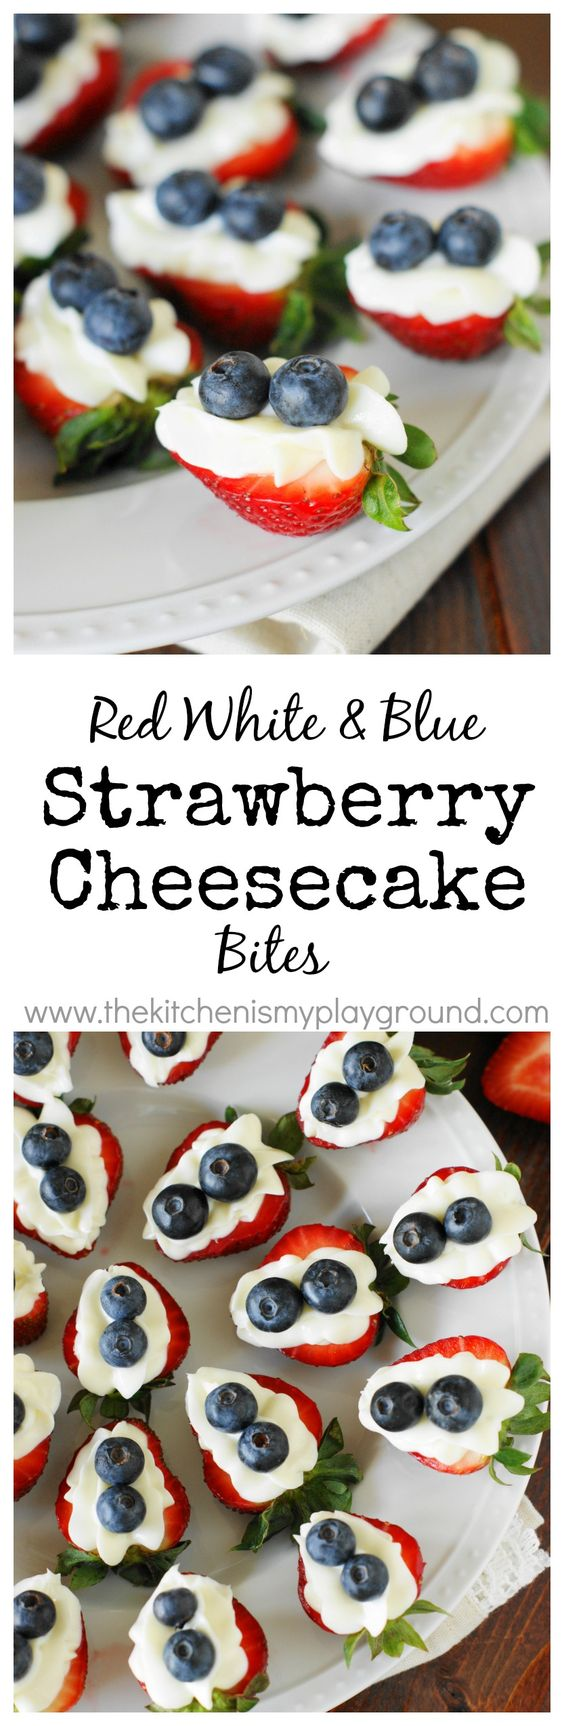 Red, White & Blue Strawberry Cheesecake Bites ~ an easy little 4th of July {or ANY time} treat. www.thekitchenismyplayground.com: